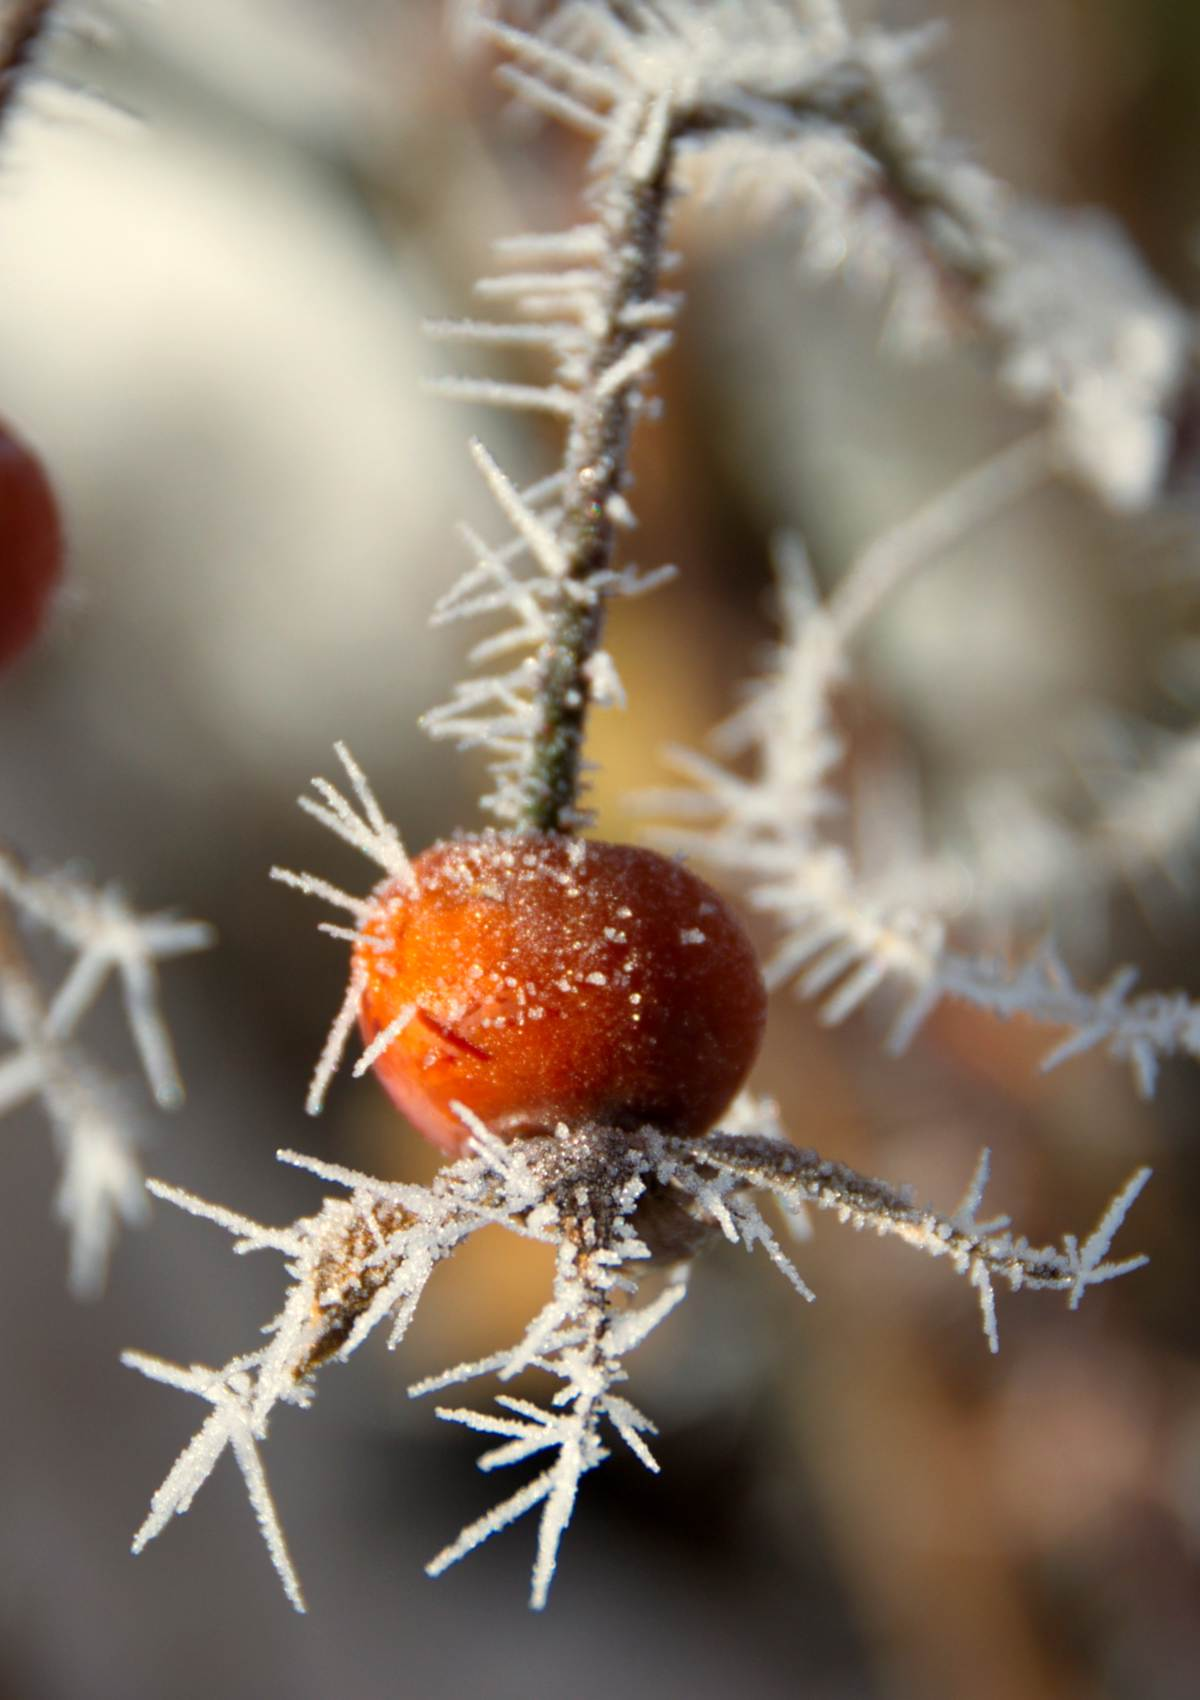 Frost draws stars on a berry